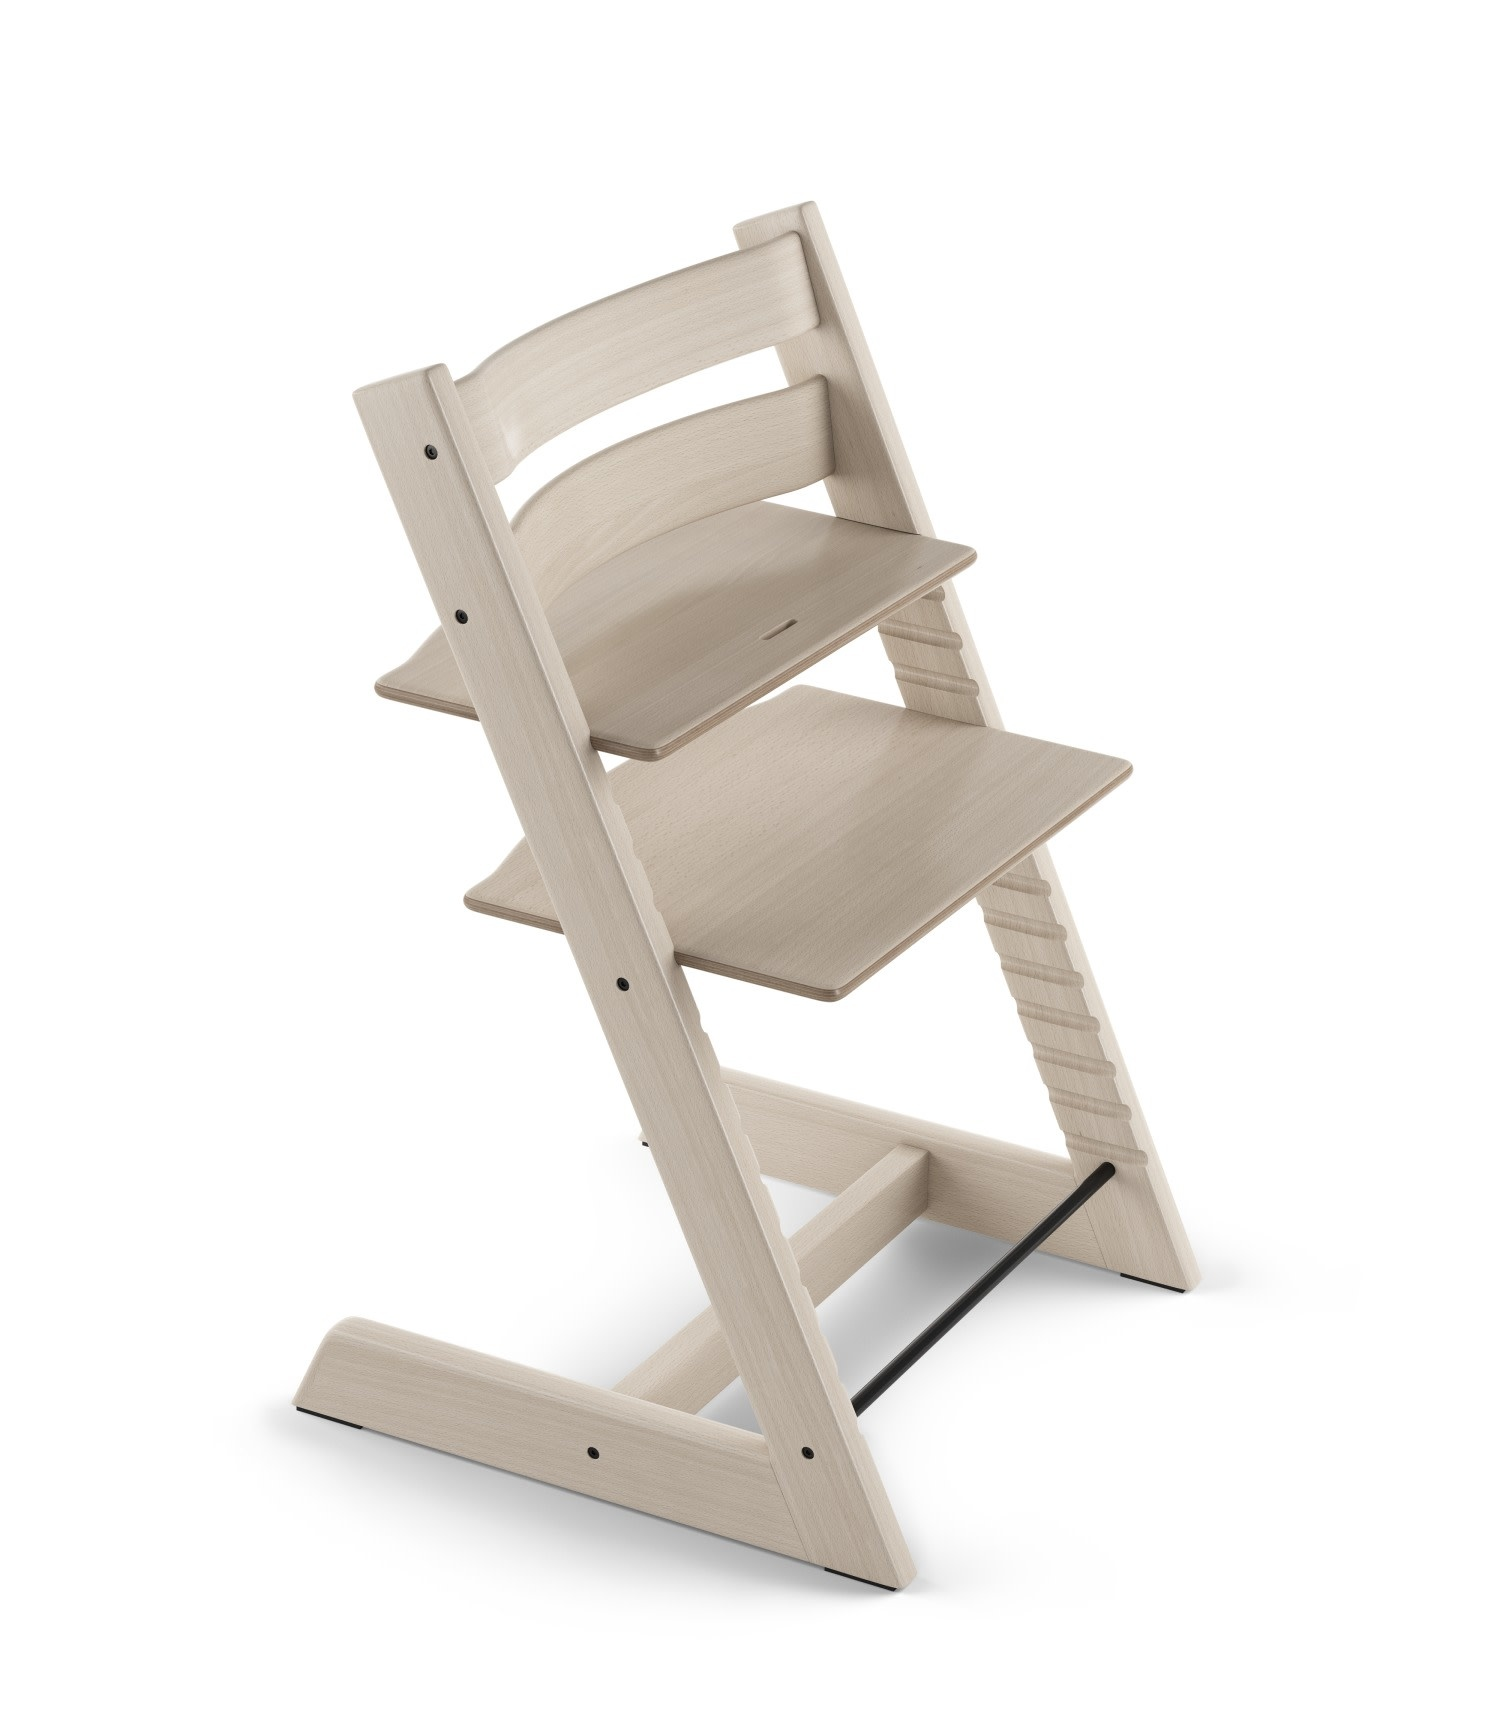 Stokke Tripp Trapp Chair- Classic Collection New